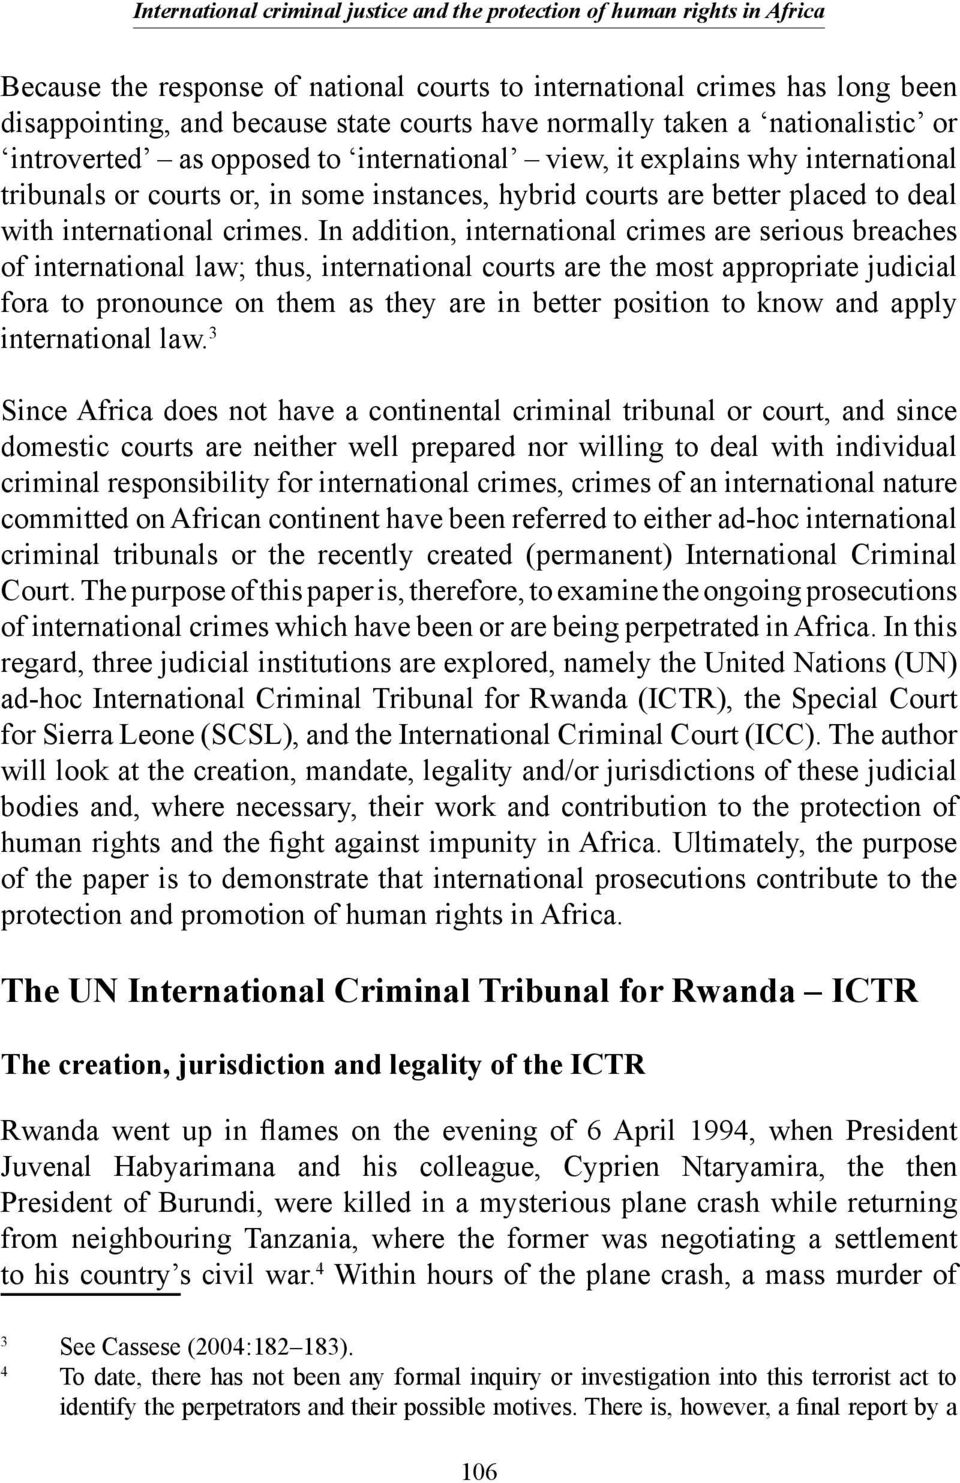 In addition, international crimes are serious breaches of international law; thus, international courts are the most appropriate judicial fora to pronounce on them as they are in better position to